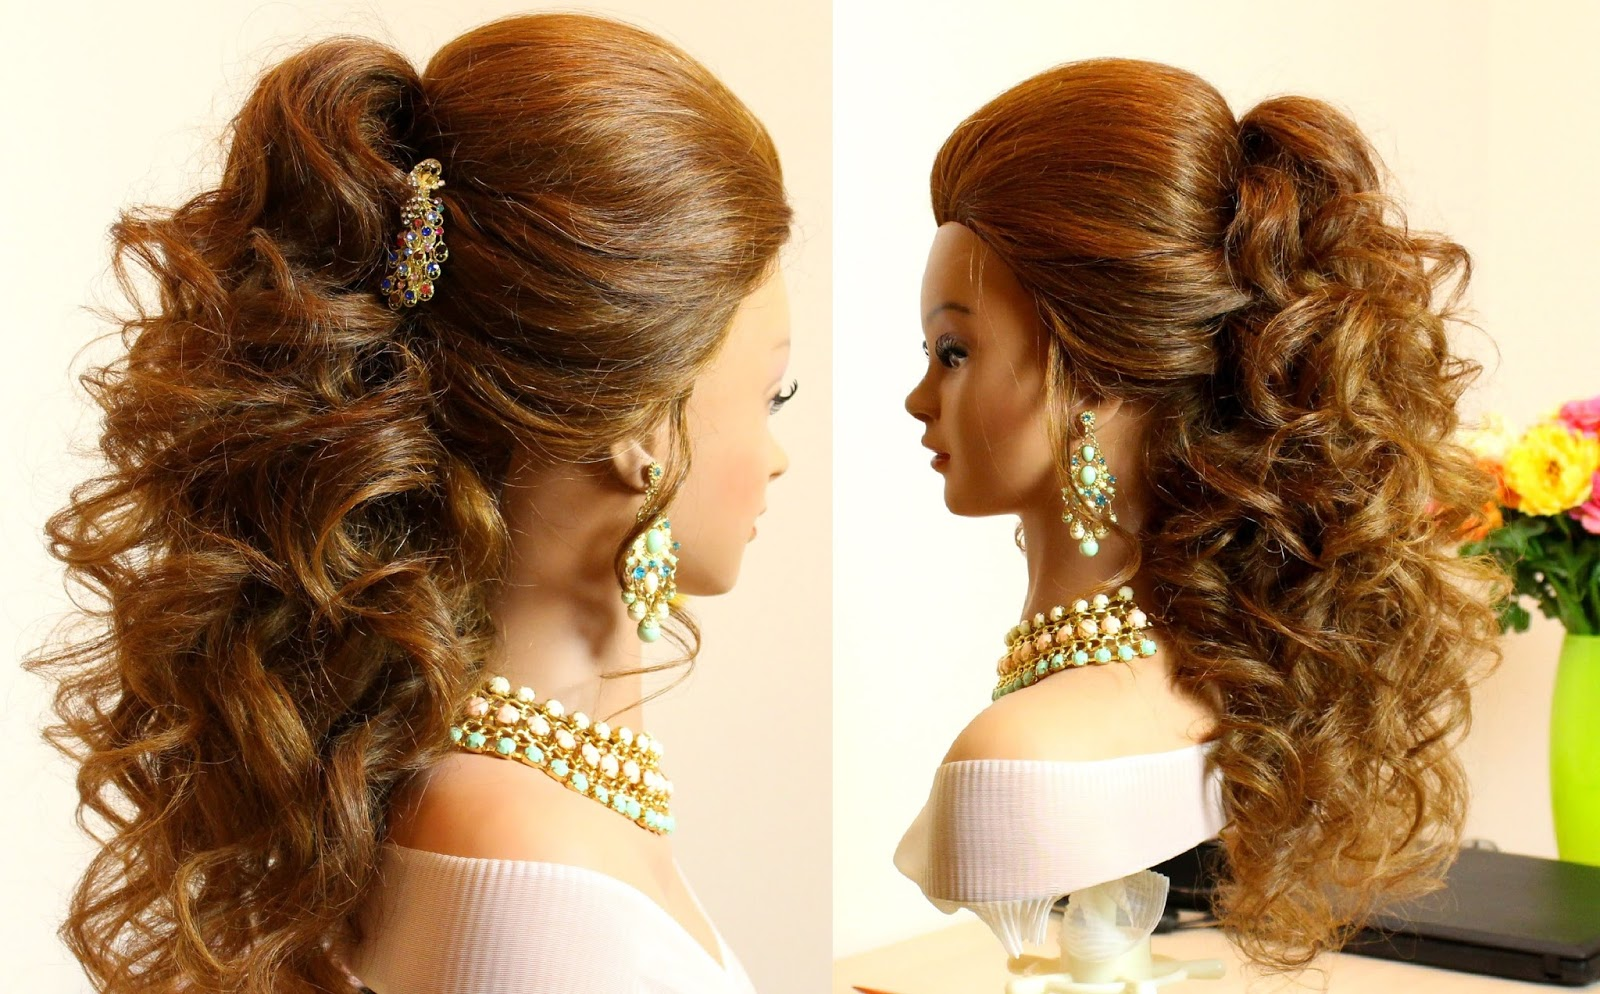 8 Hairstyles For Curly Hair: 49 Elegant Prom Hairstyles For Curly Hair Women